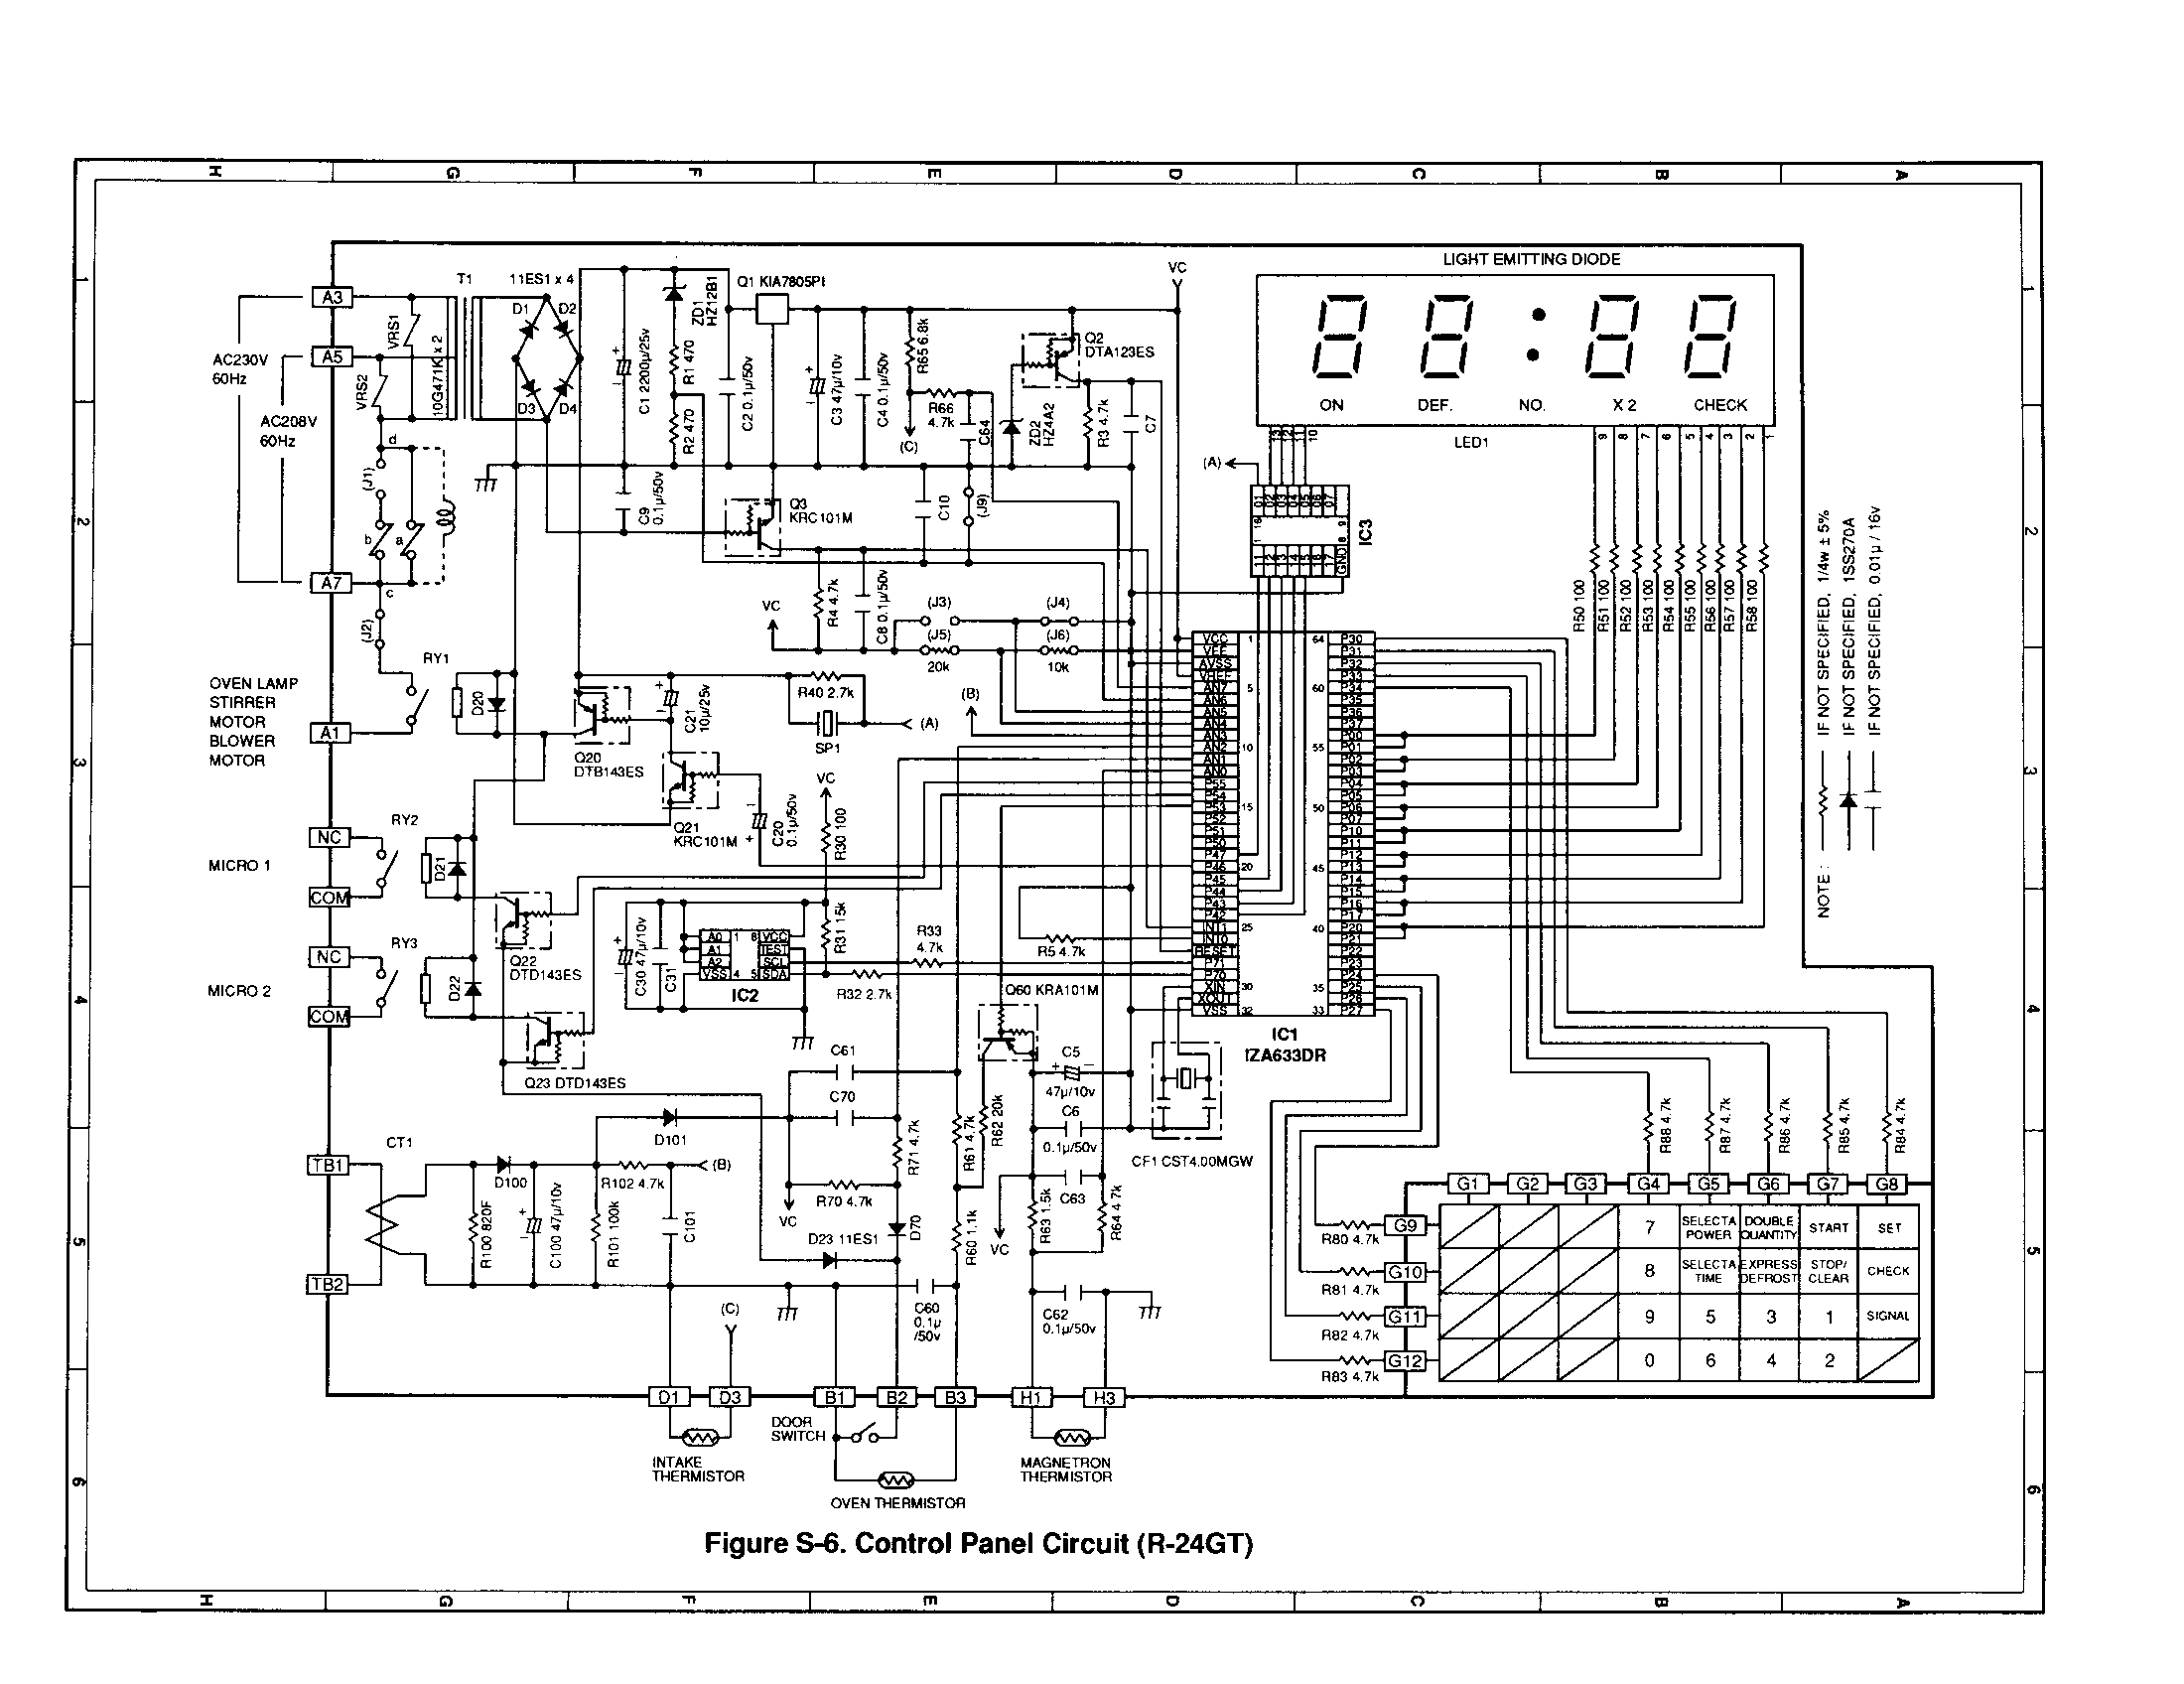 World microwave ovens schematic diagrams and manuals